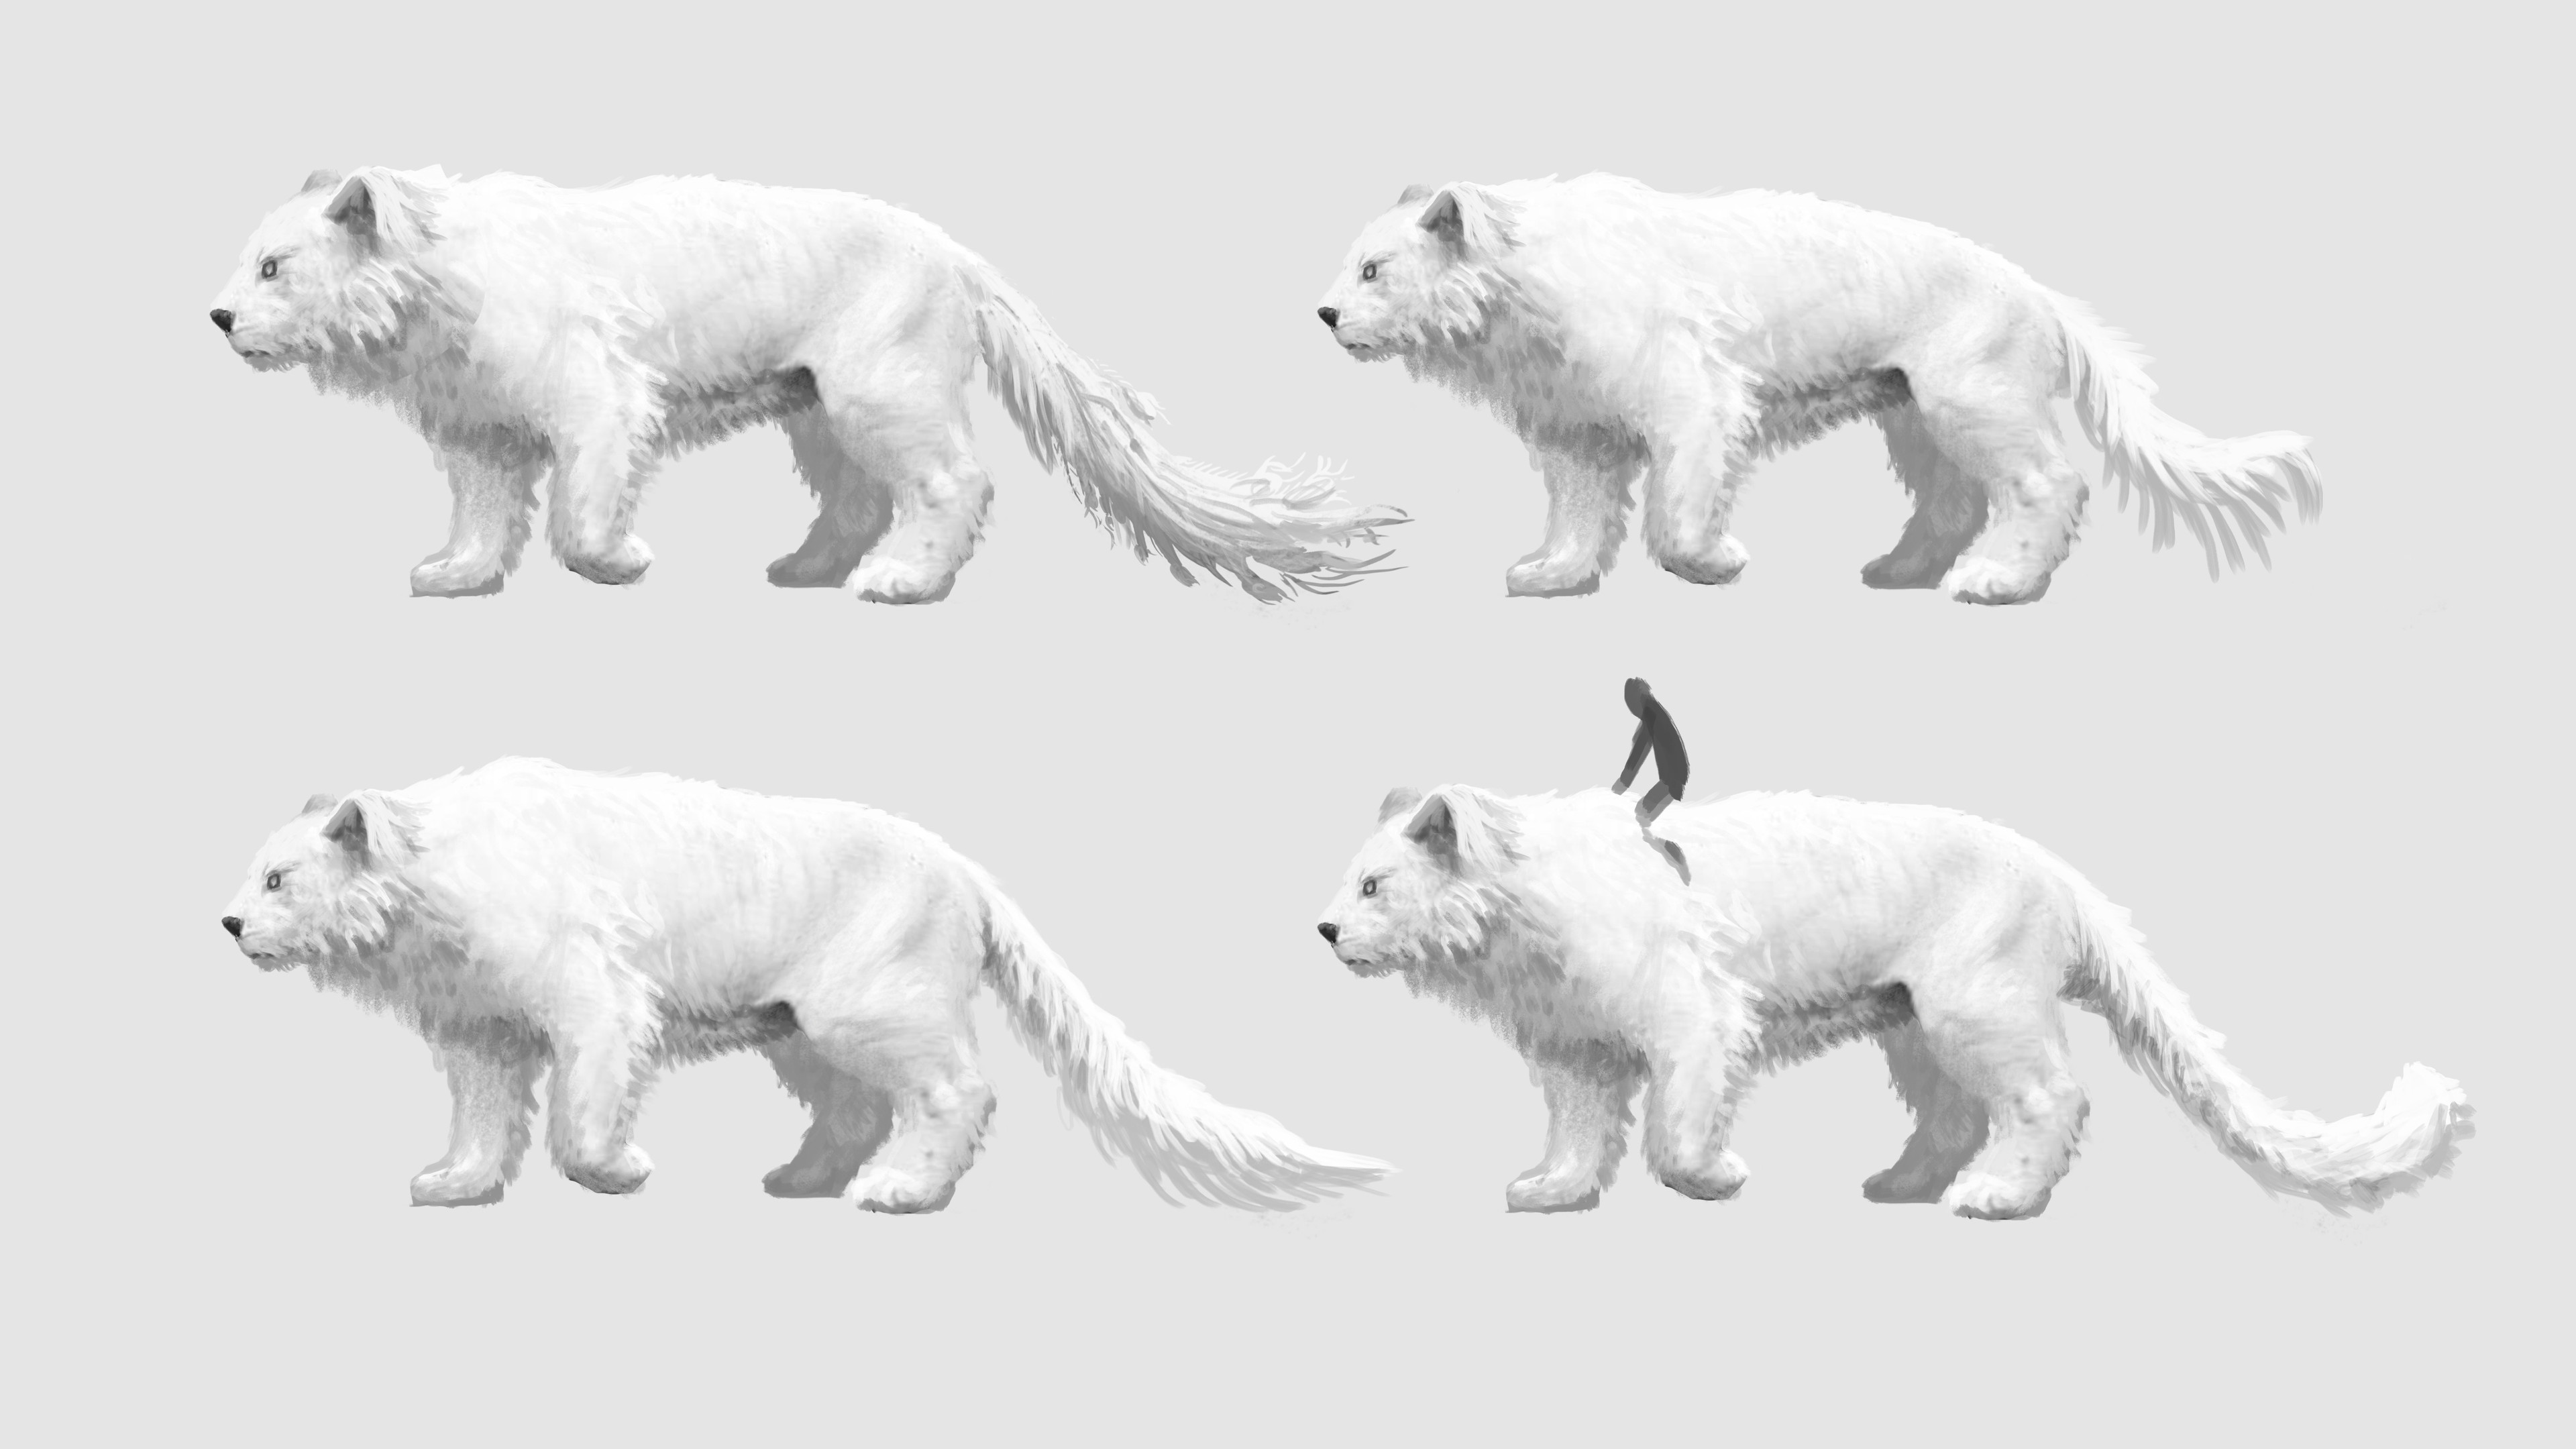 Small variations in proportions and tail